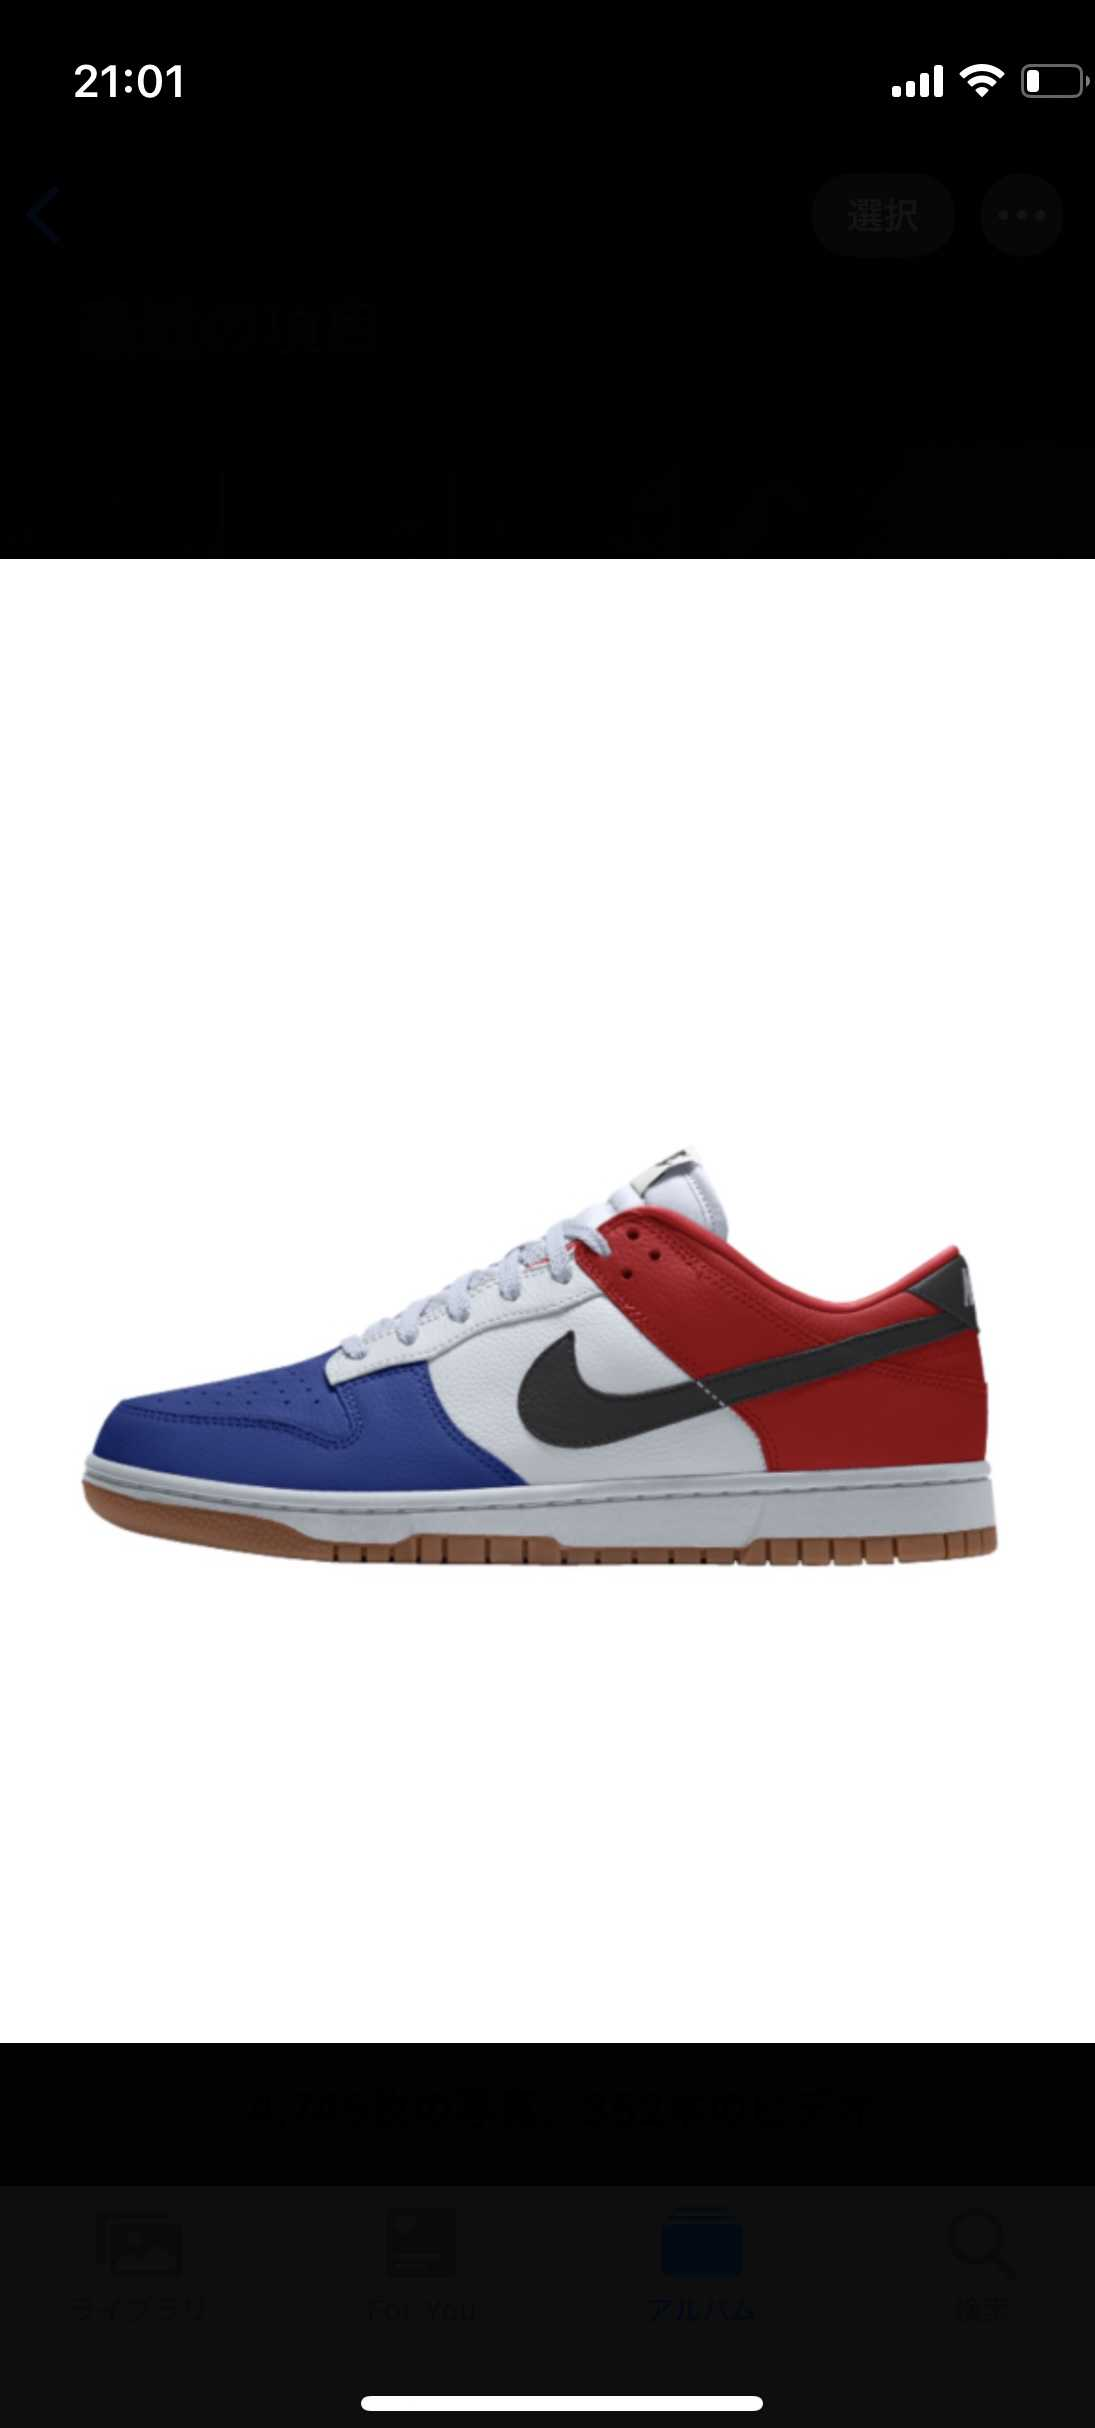 dunk low 365 by you